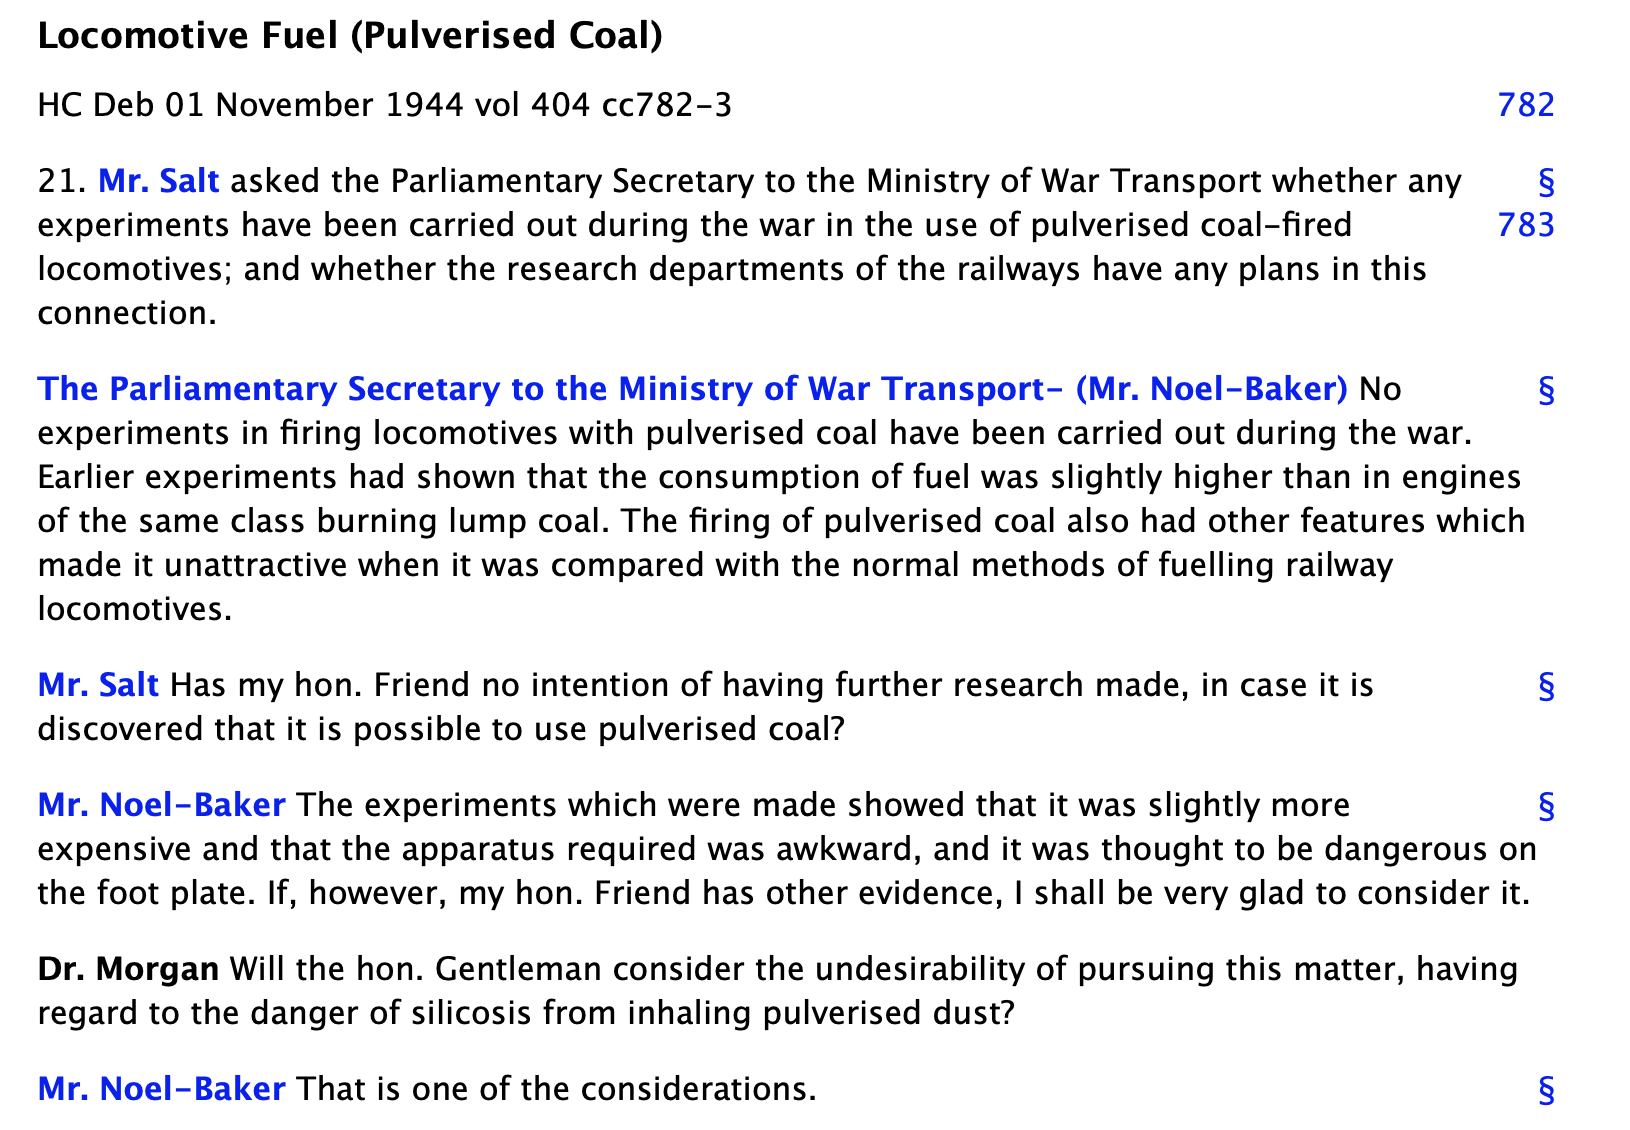 Locomotive Fuel - Pulverised Coal